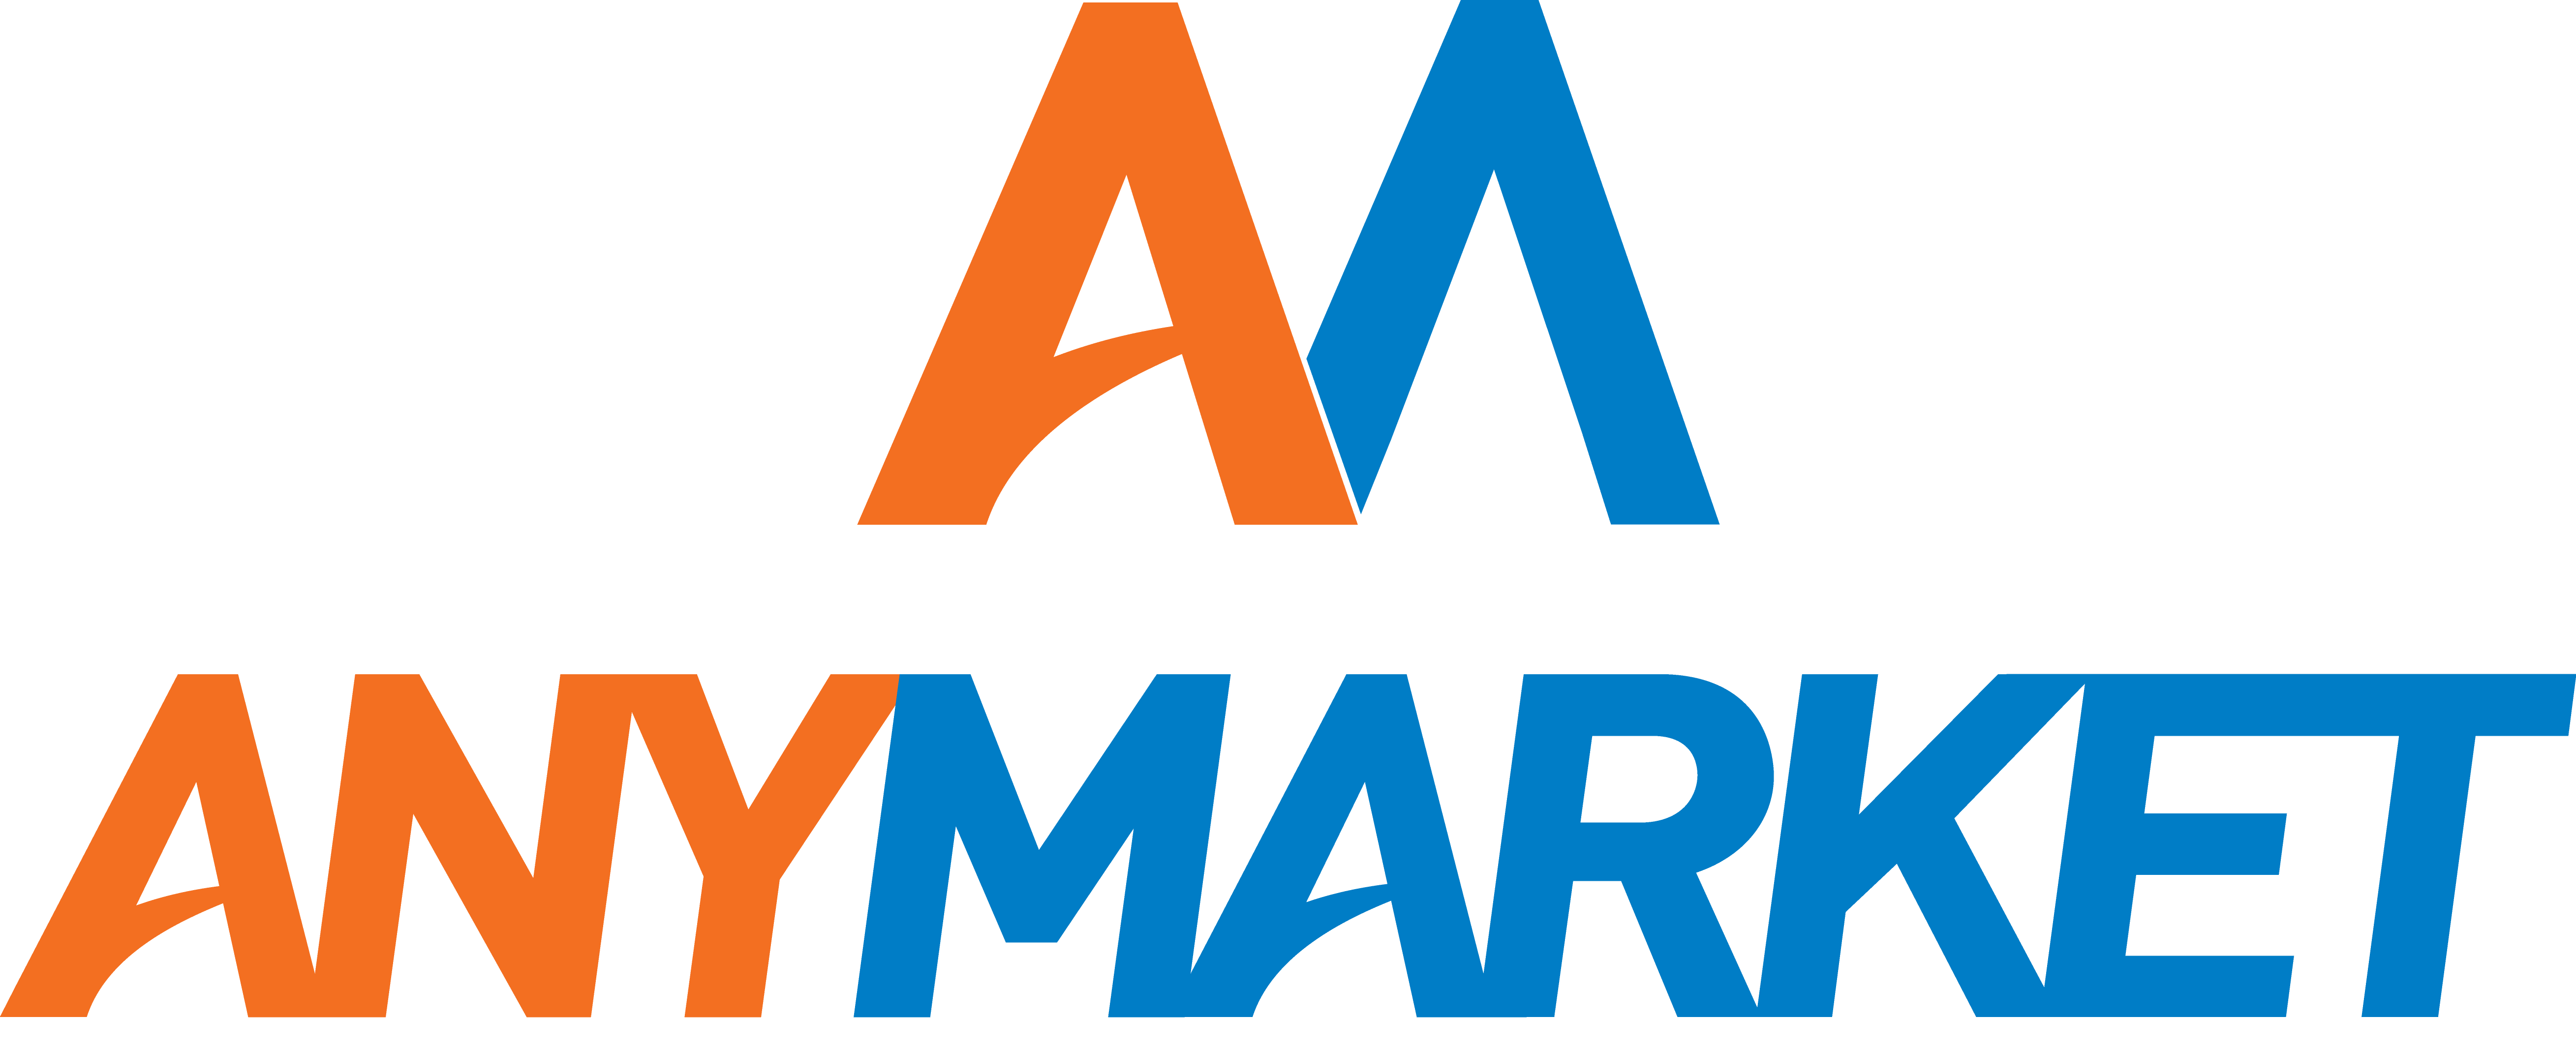 Logo parceiro da Alternativa - Anymarket Marketplace